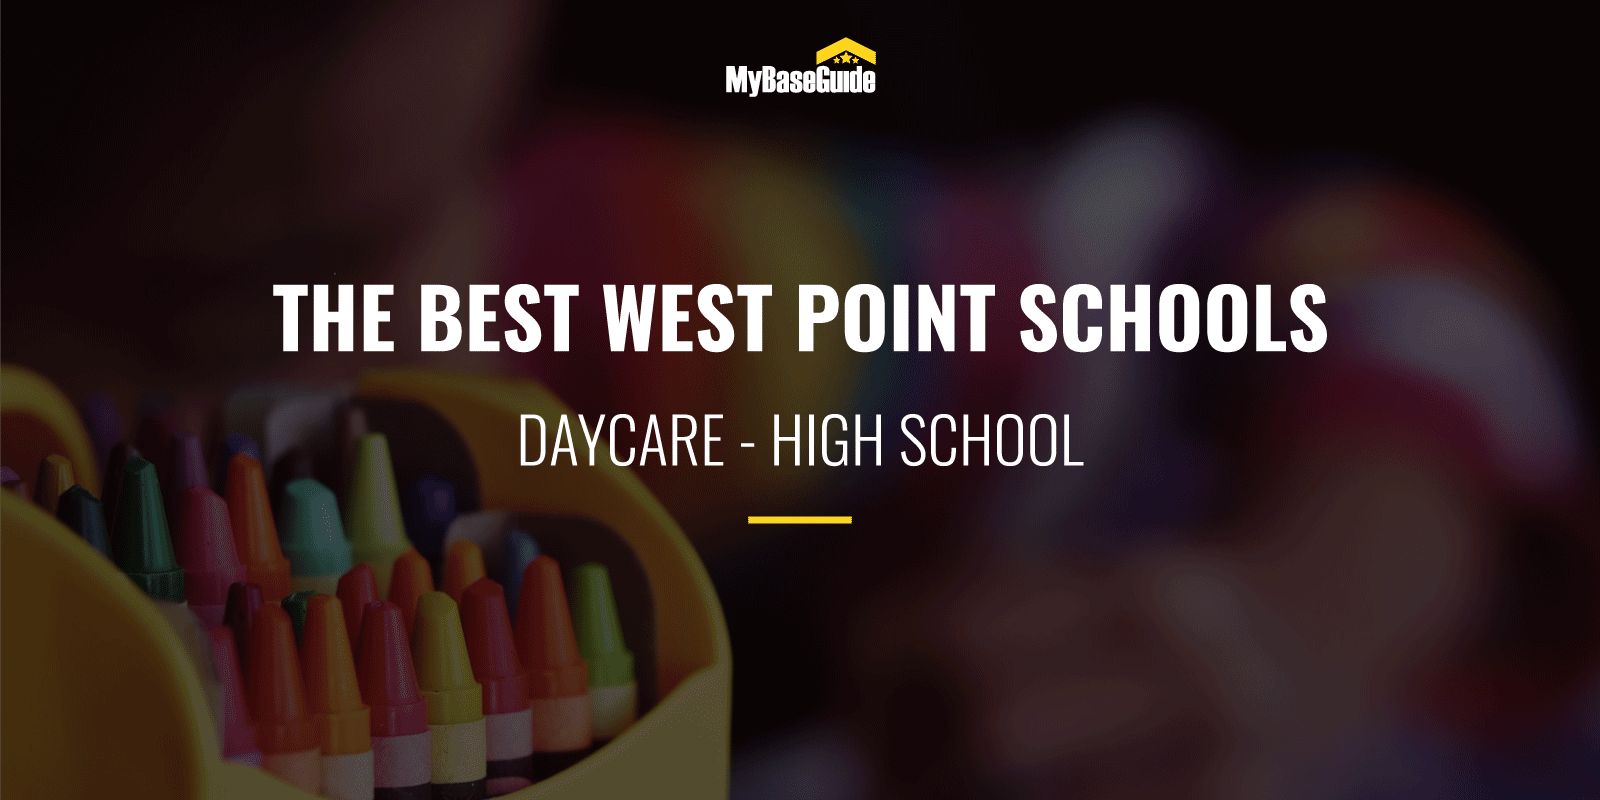 The Best West Point Schools: Daycare - High School